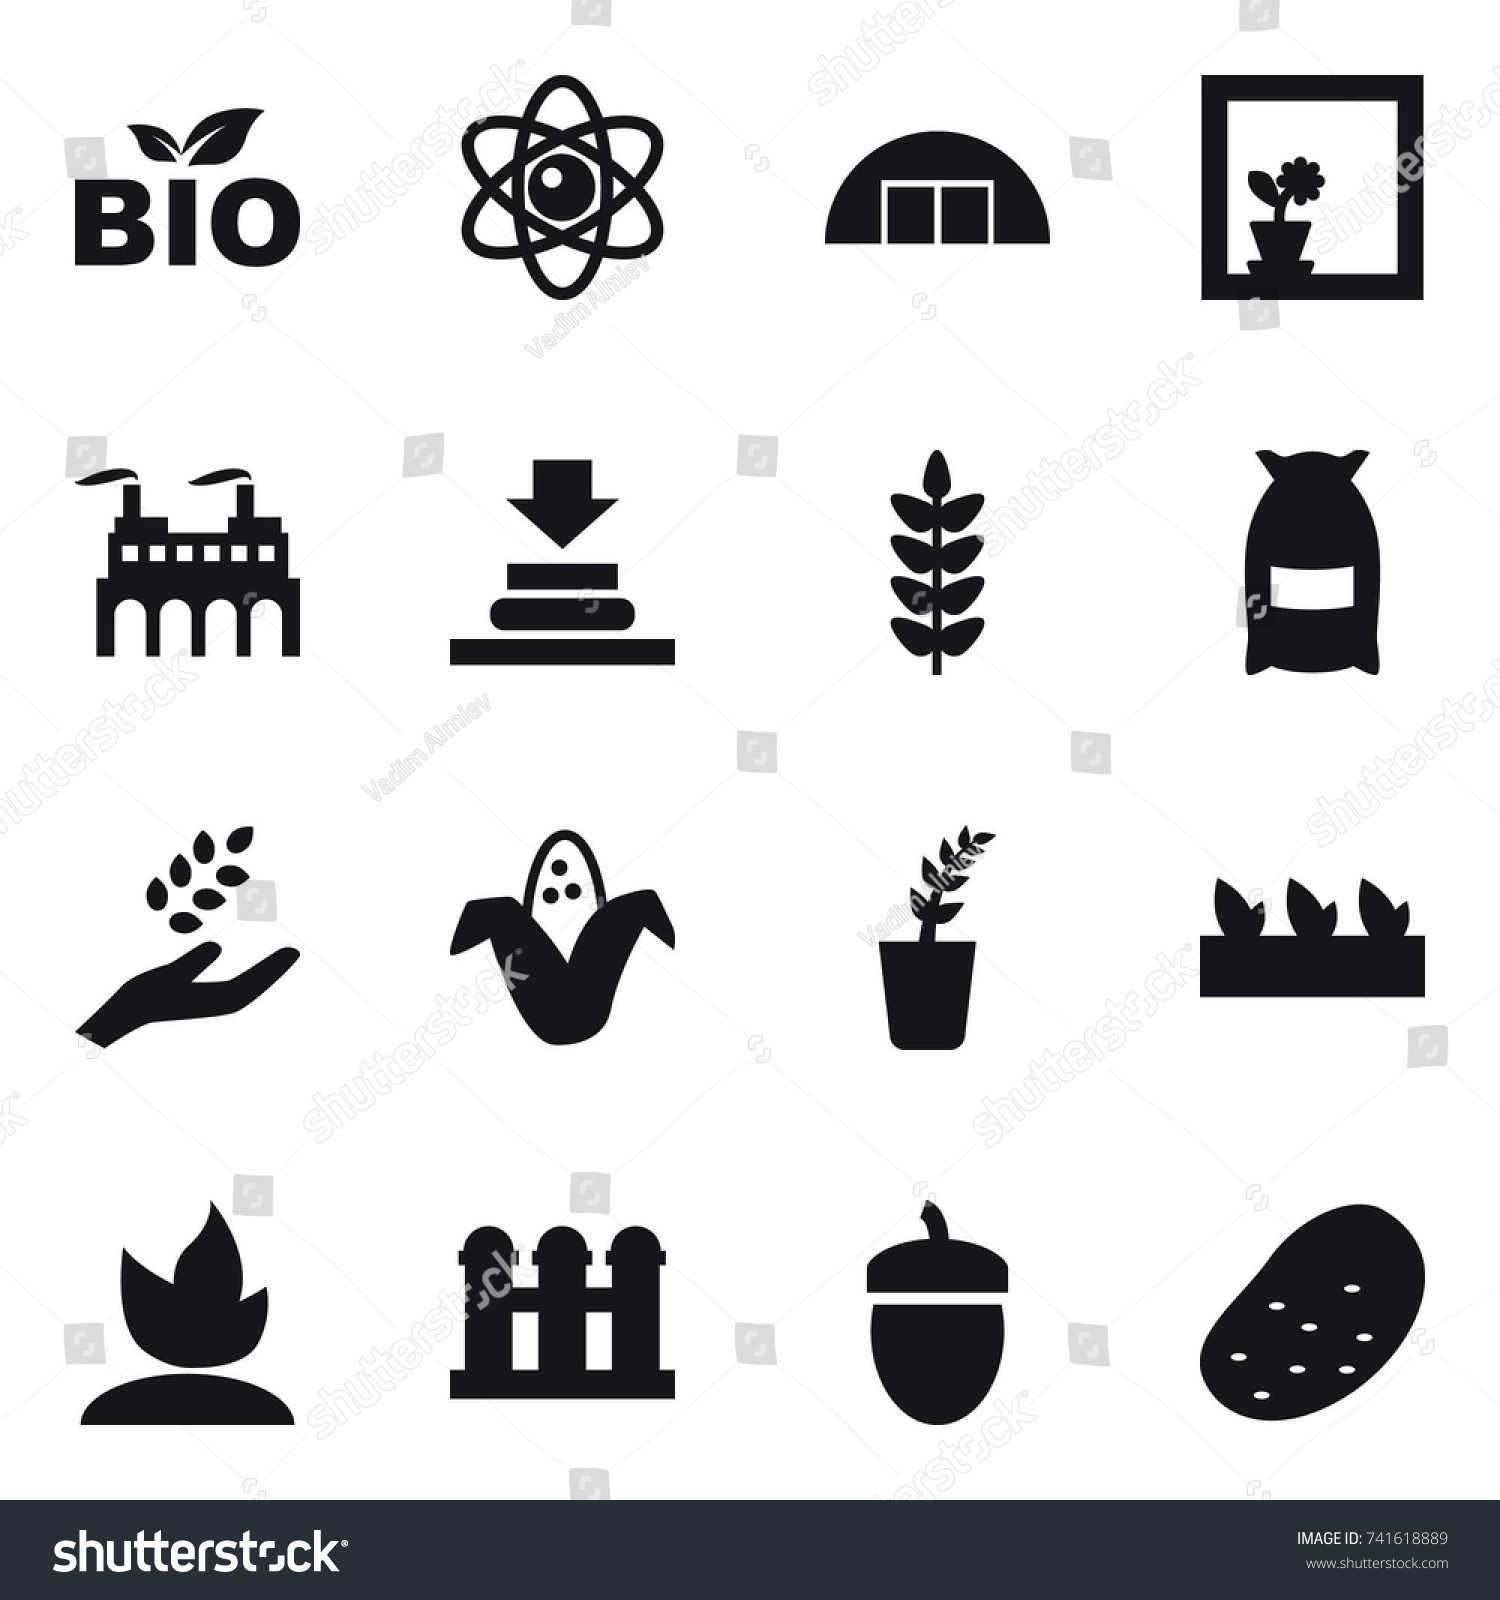 Grain Bio 16 Vector Icon Set Bio Atom Stock Vector Royalty Free 741618889